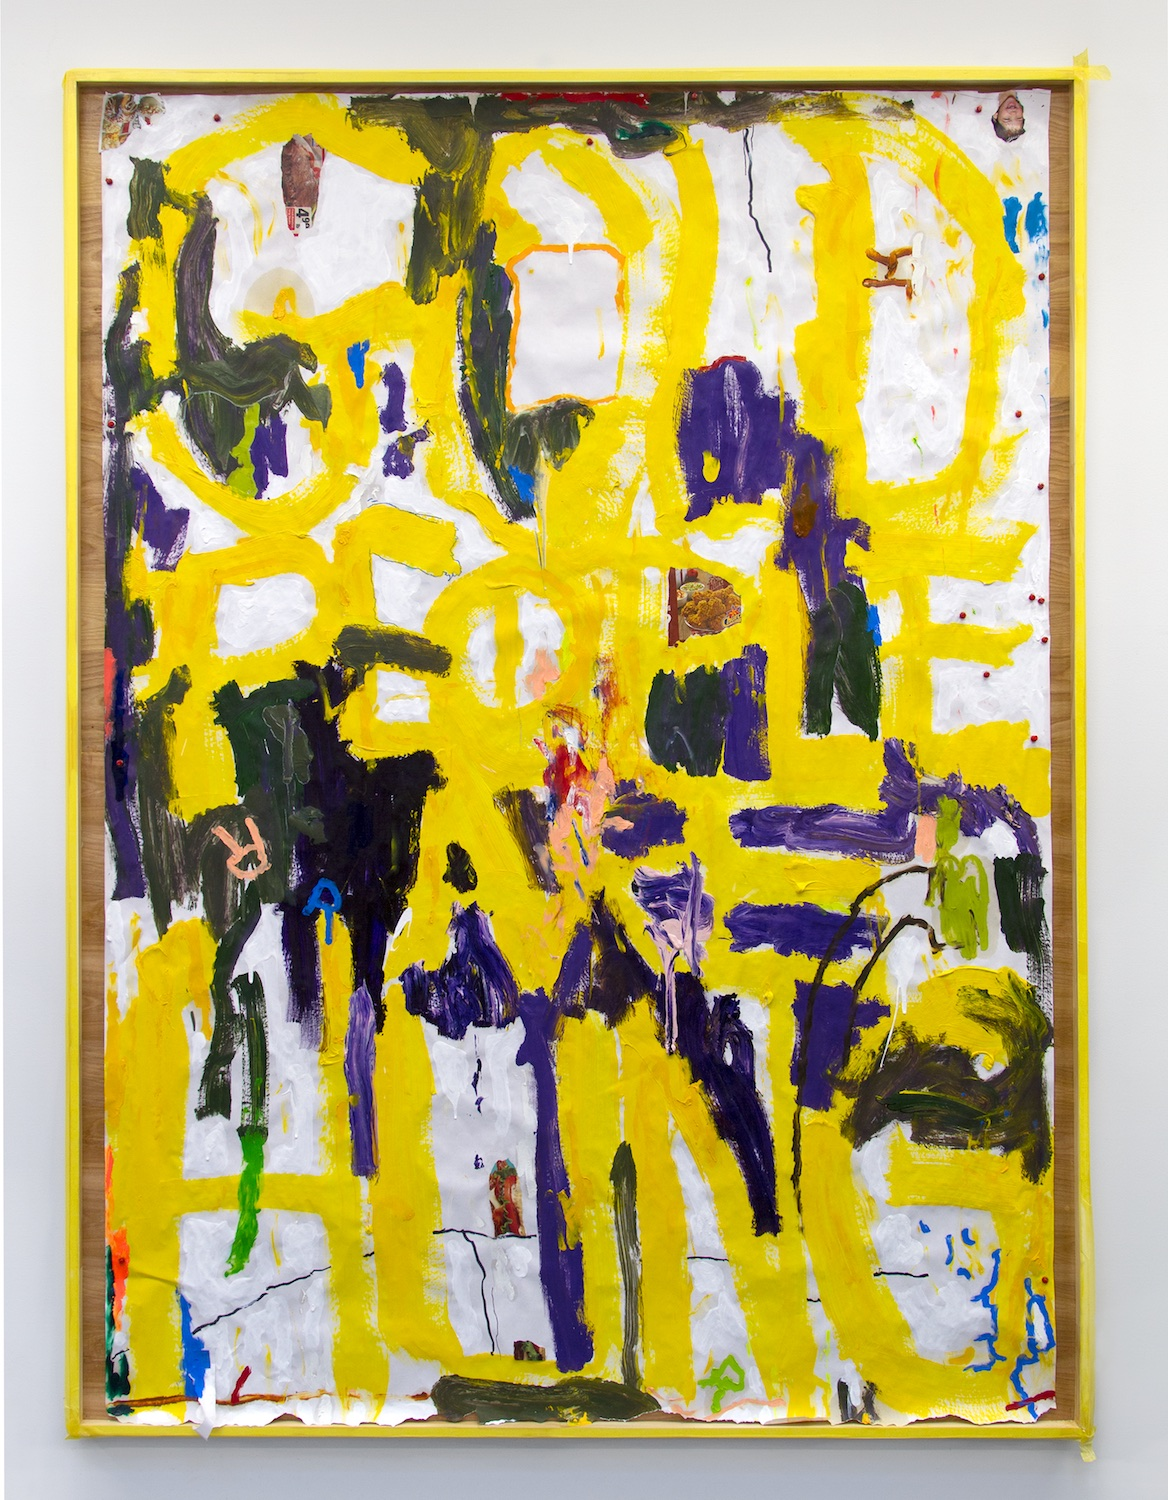 William Pope.L  Gold People are Hung  2015 Acrylic, oil, pencil, collage, wooden frame 84h x 60w in WP010